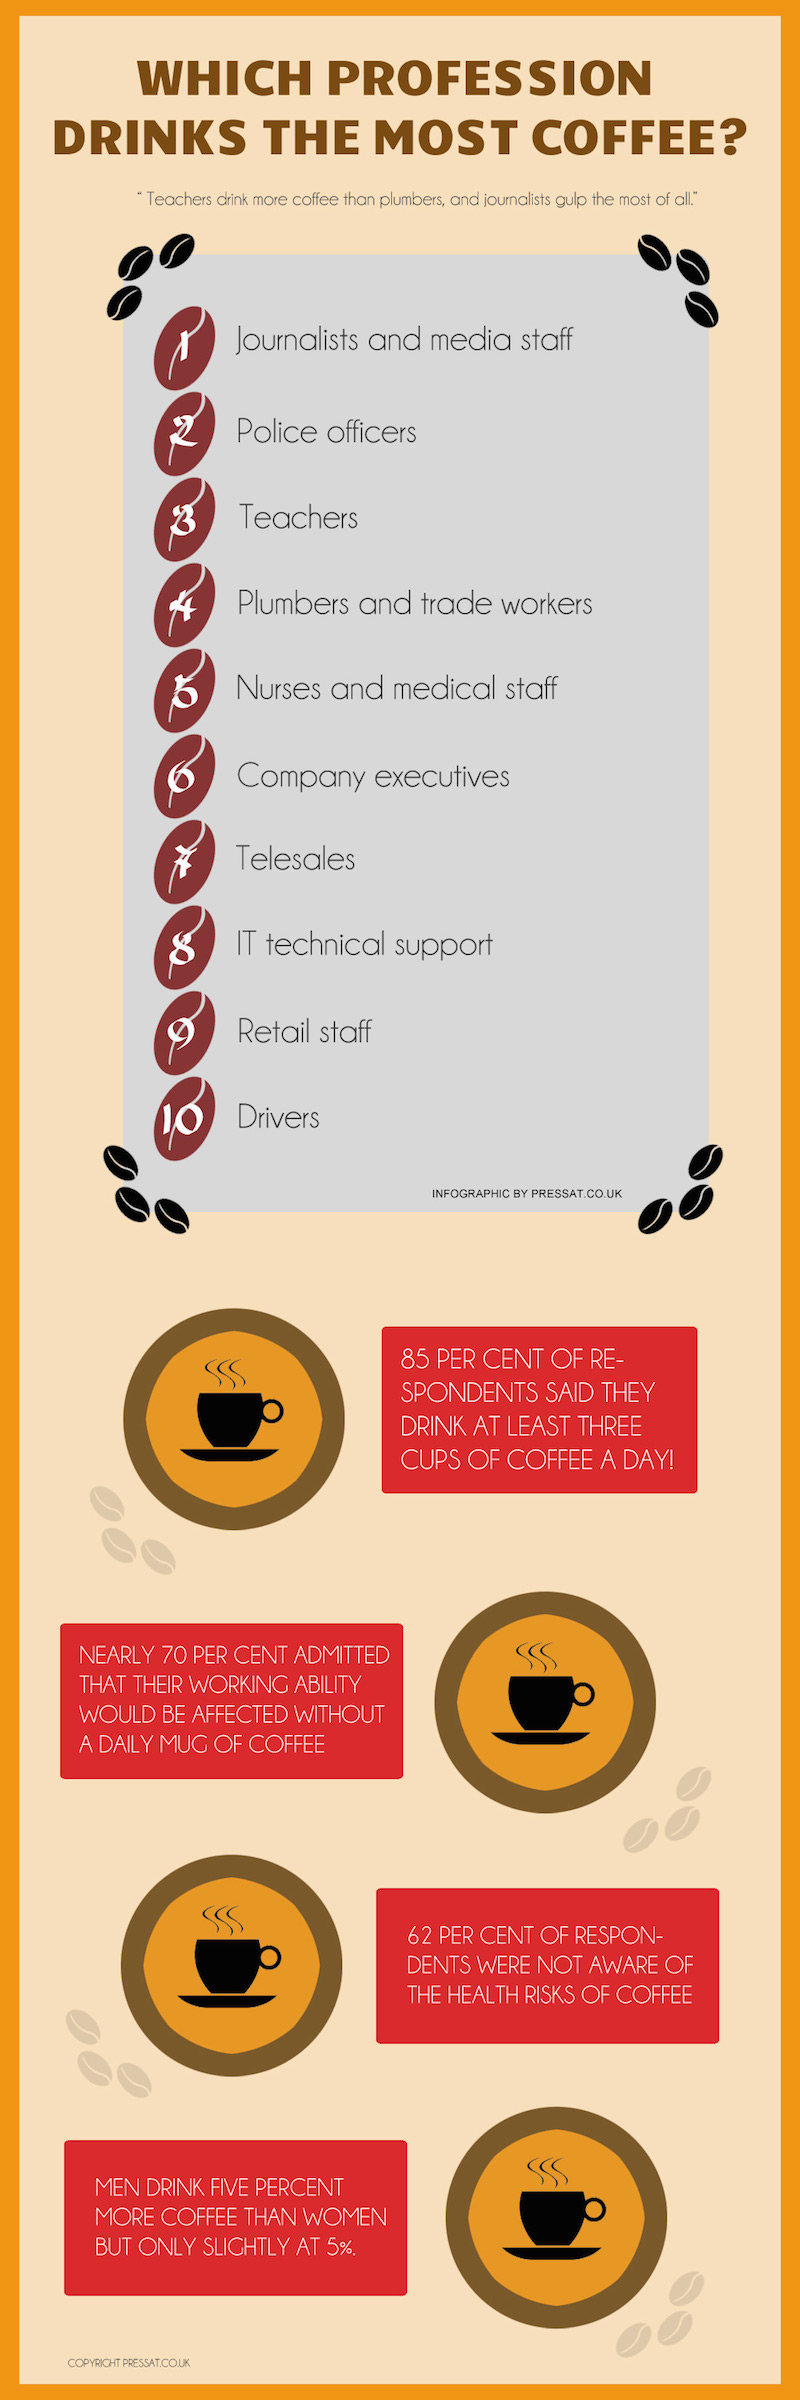 coffee-professions1-1